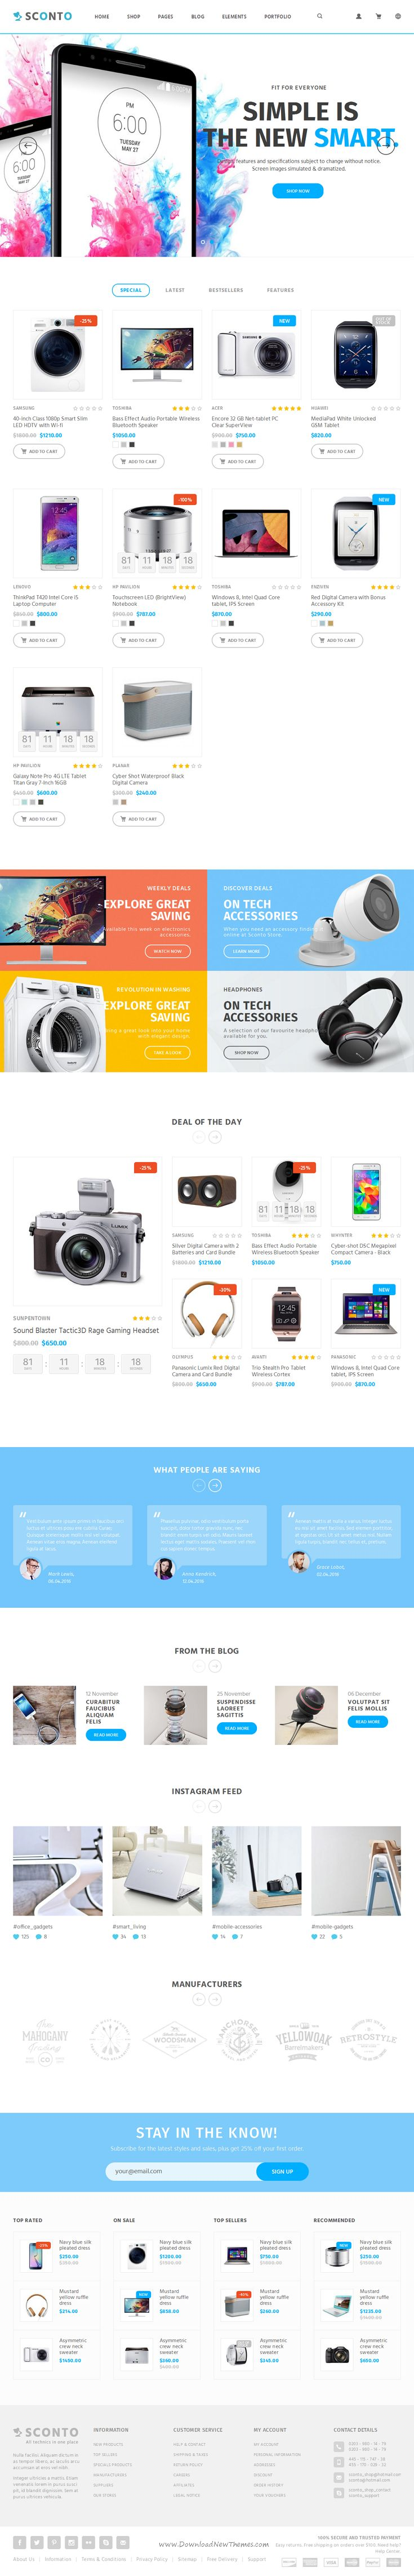 Sconto is a Premium Responsive Bootstrap Template for multipurpose eCommerce #website with 10 homepages variation, 8 portfolio layout and great features. #electronics #shop Download Now!